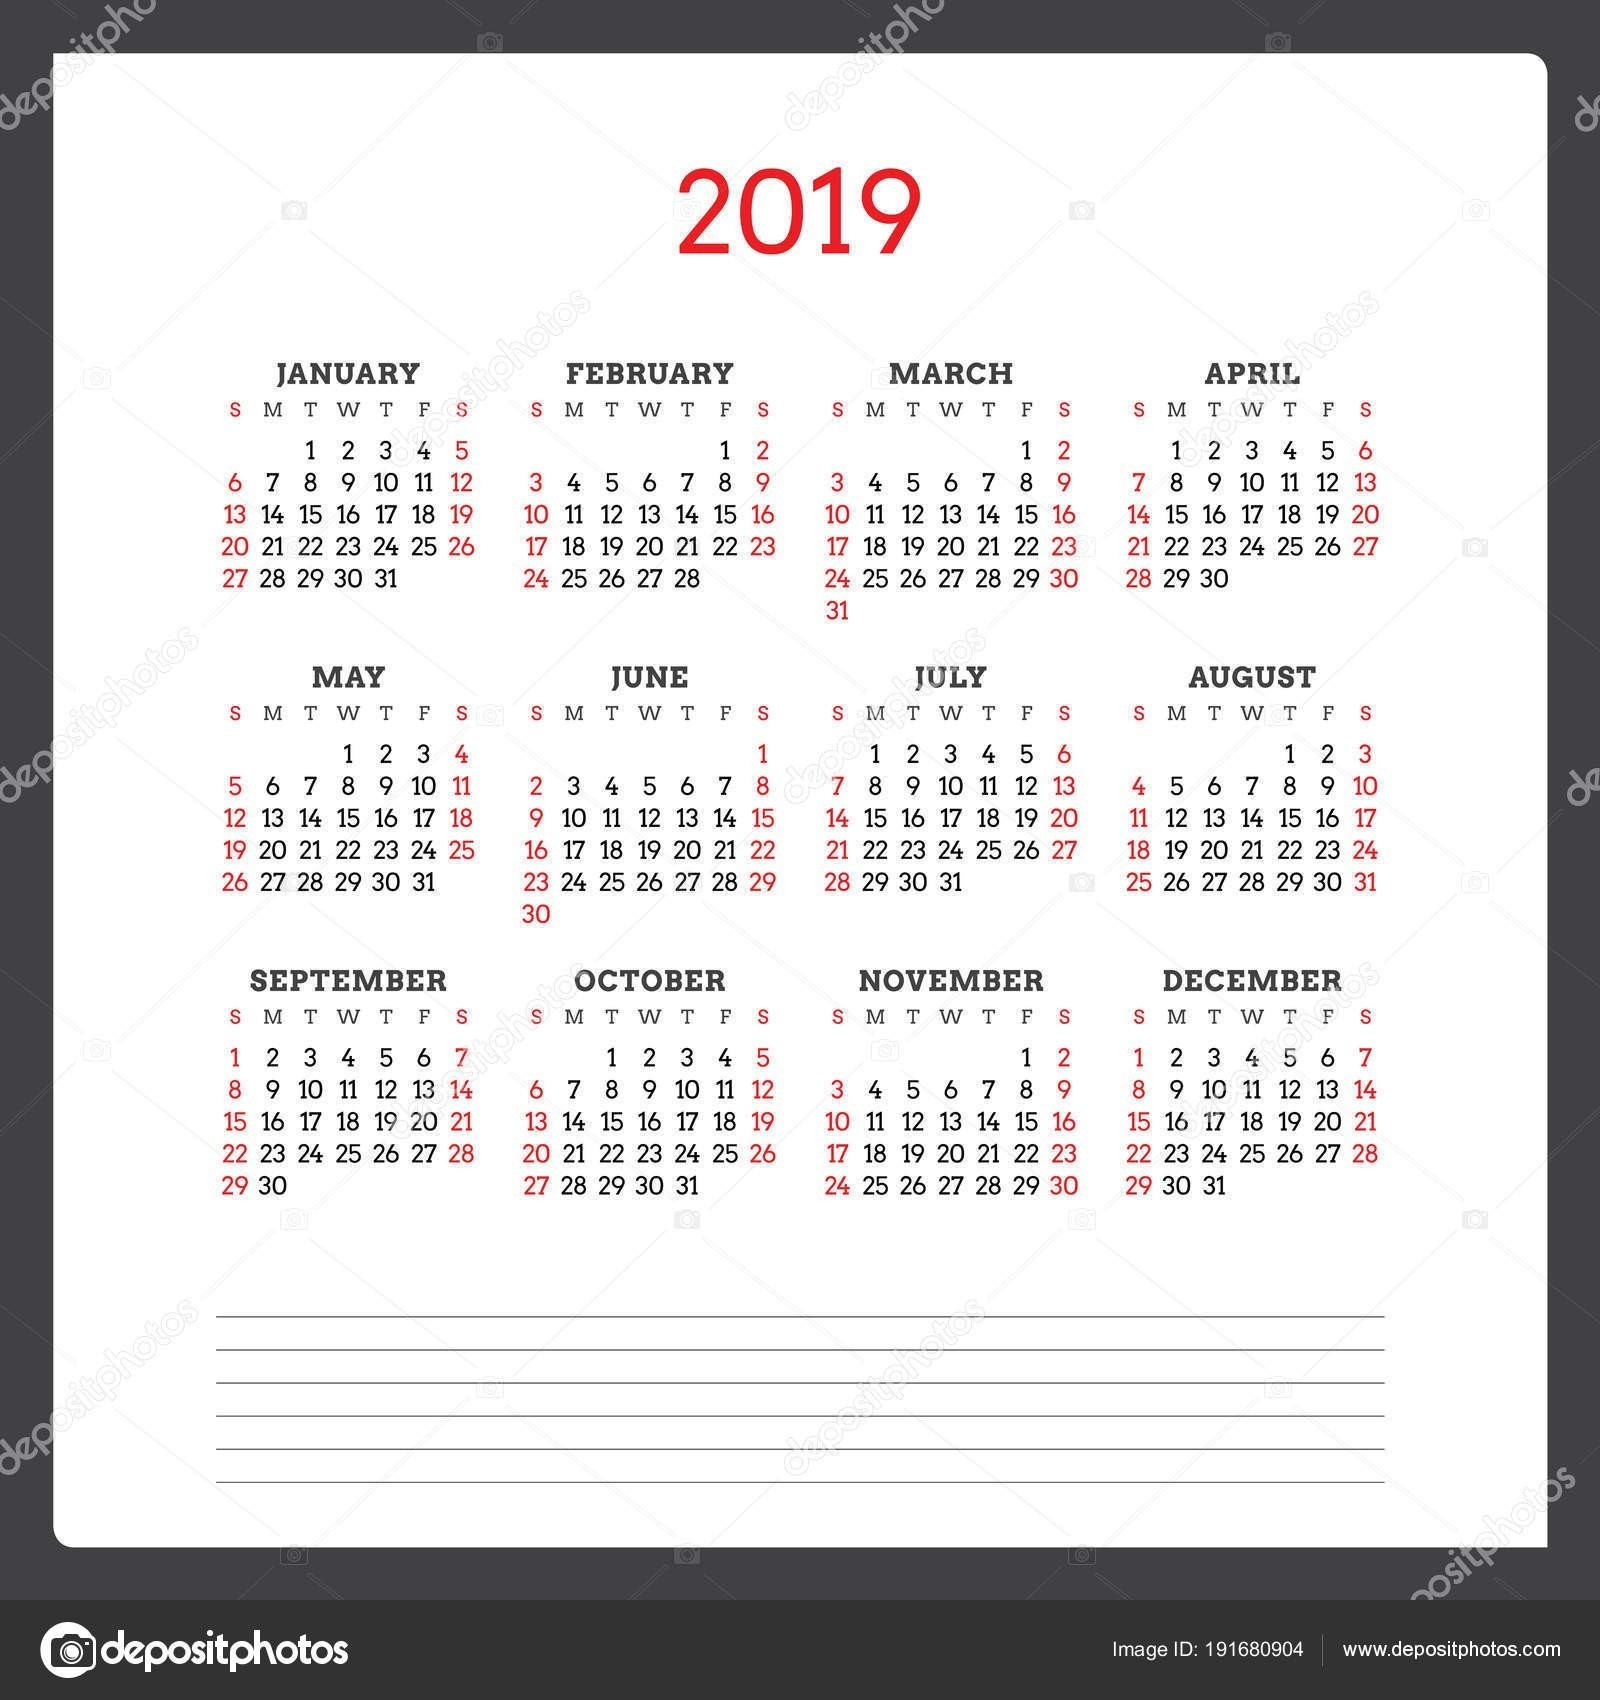 Calendario Agosto 2019-2020 Recientes Observar Calendario Agosto 2019 Para Imprimir Word Of Calendario Agosto 2019-2020 Más Recientemente Liberado Calendario Febrero 2019 63ld Calendario Calendar March